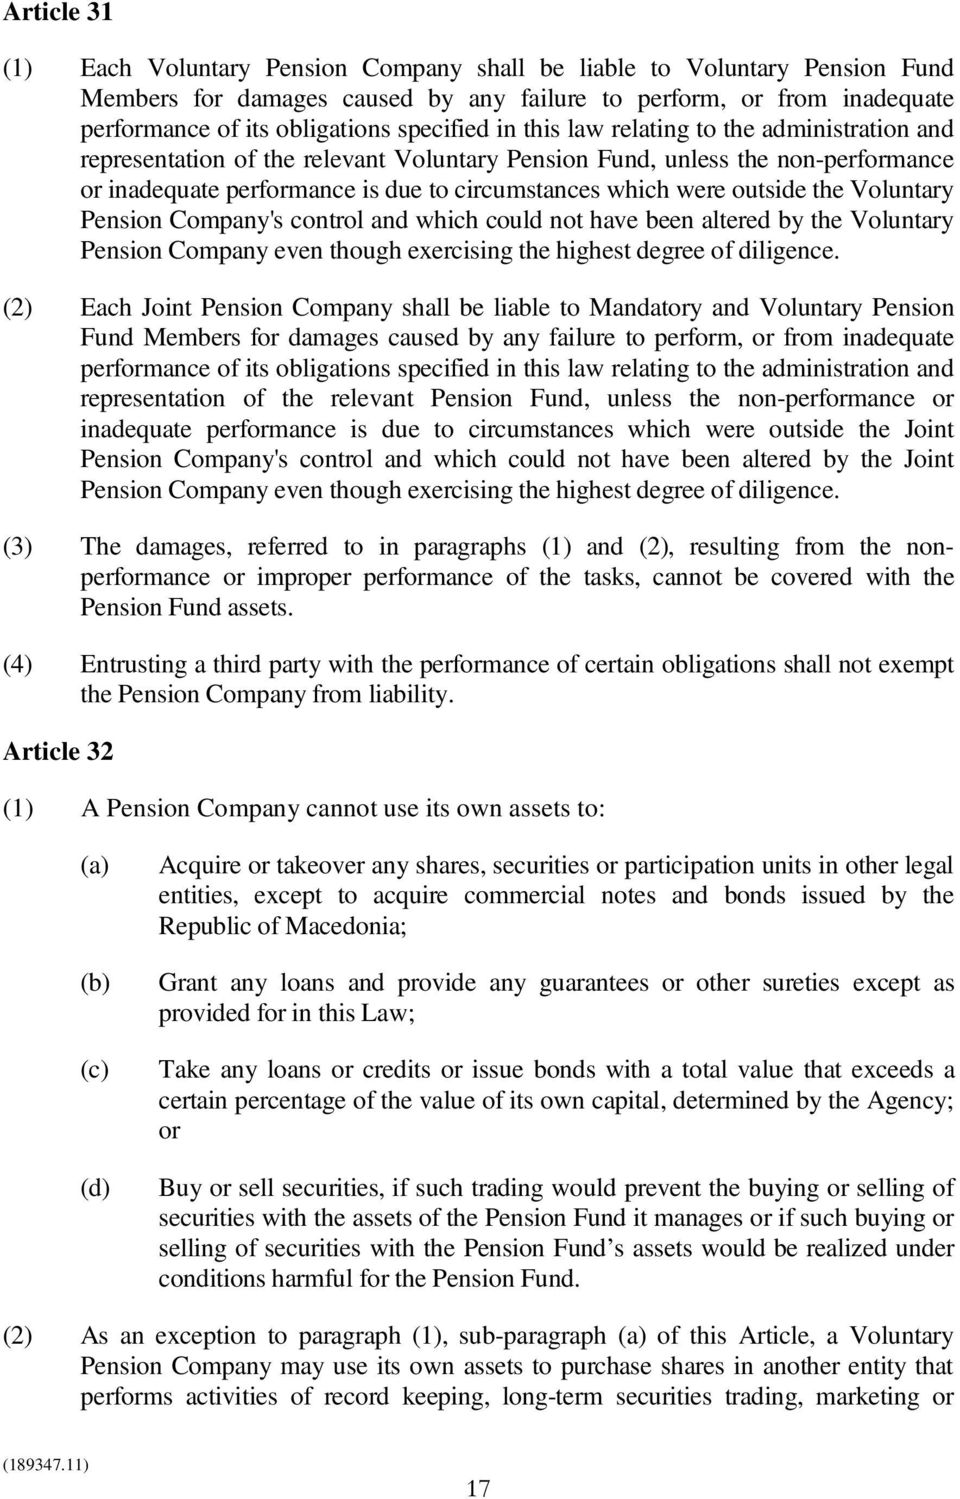 outside the Voluntary Pension Company's control and which could not have been altered by the Voluntary Pension Company even though exercising the highest degree of diligence.